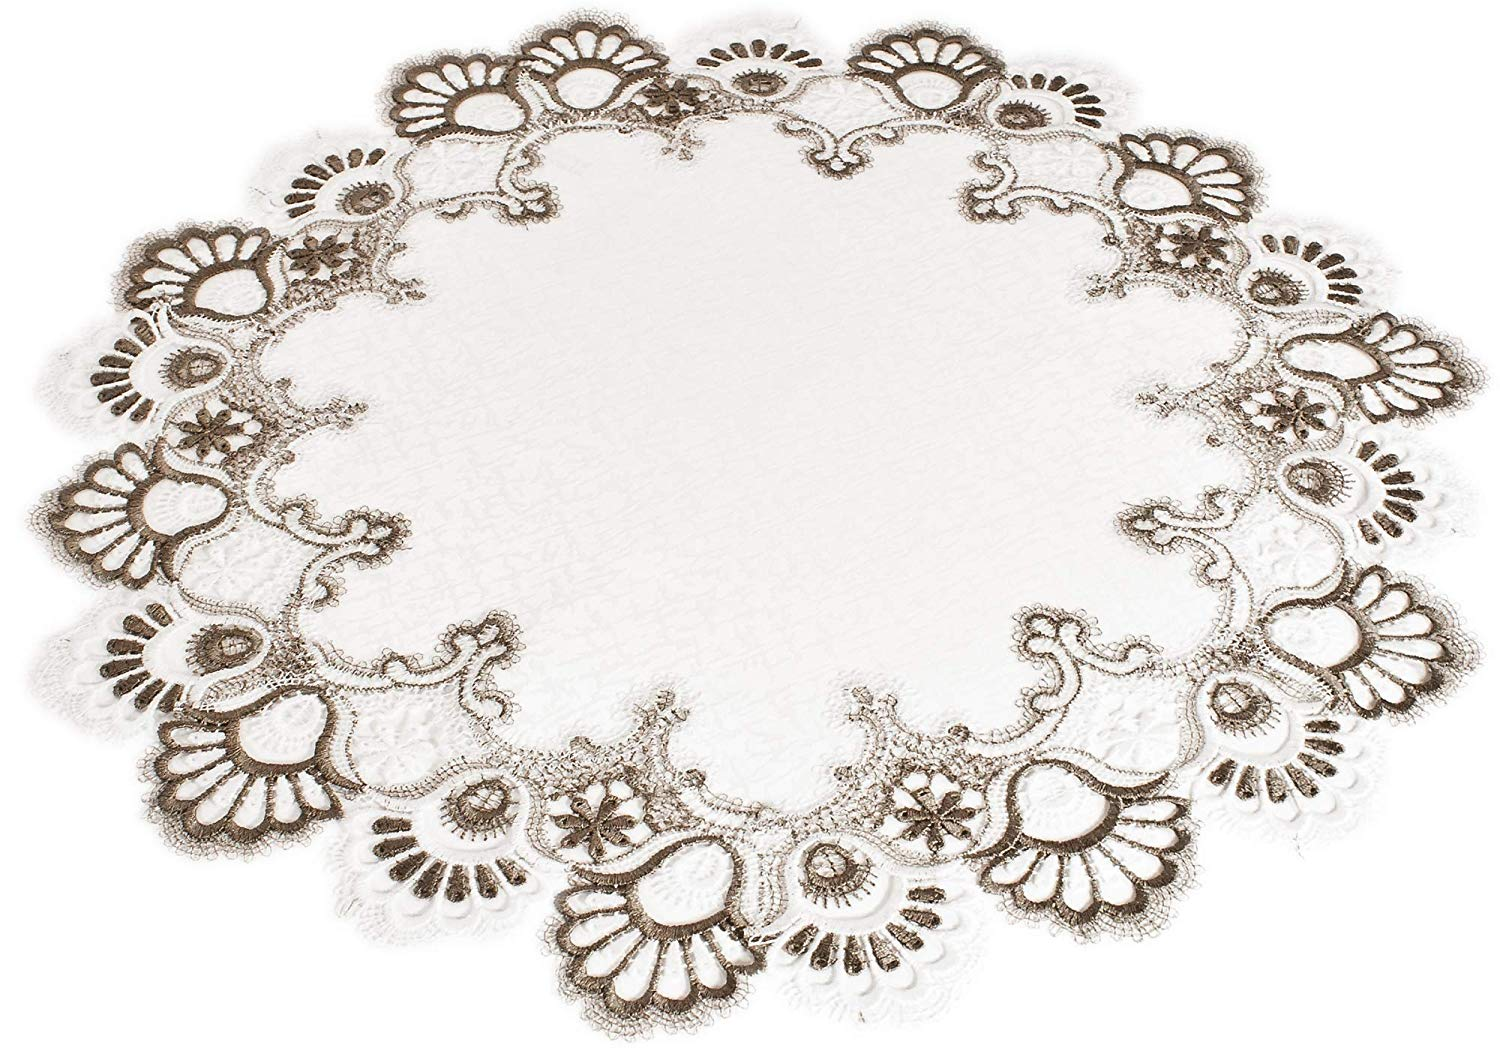 White Cocoa Earth Tones Jacquard Pea Tail Lace Doily Placemat Table Centerpiece